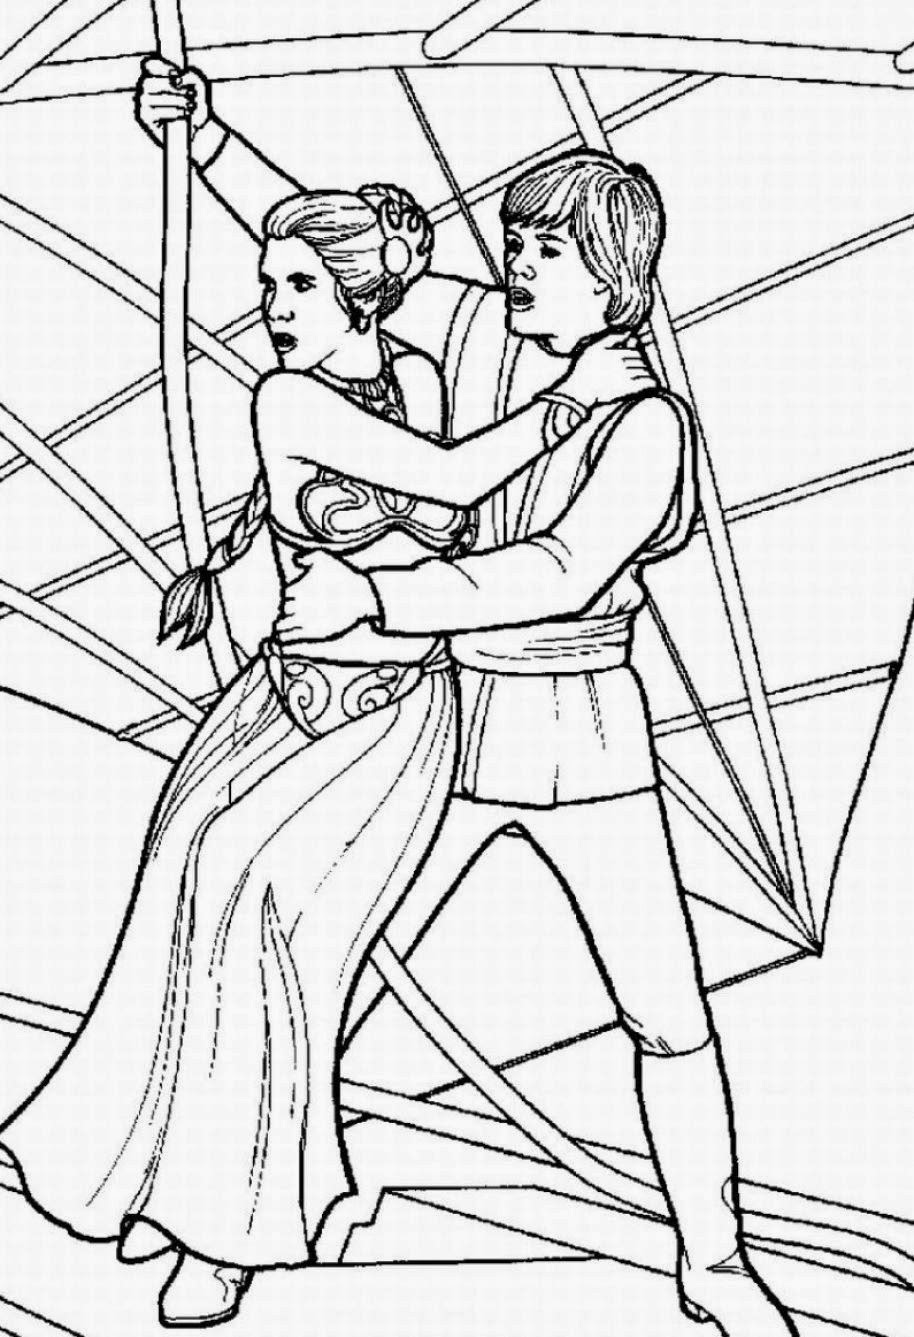 star wars coloring images star wars coloring pages 2018 dr odd wars star images coloring